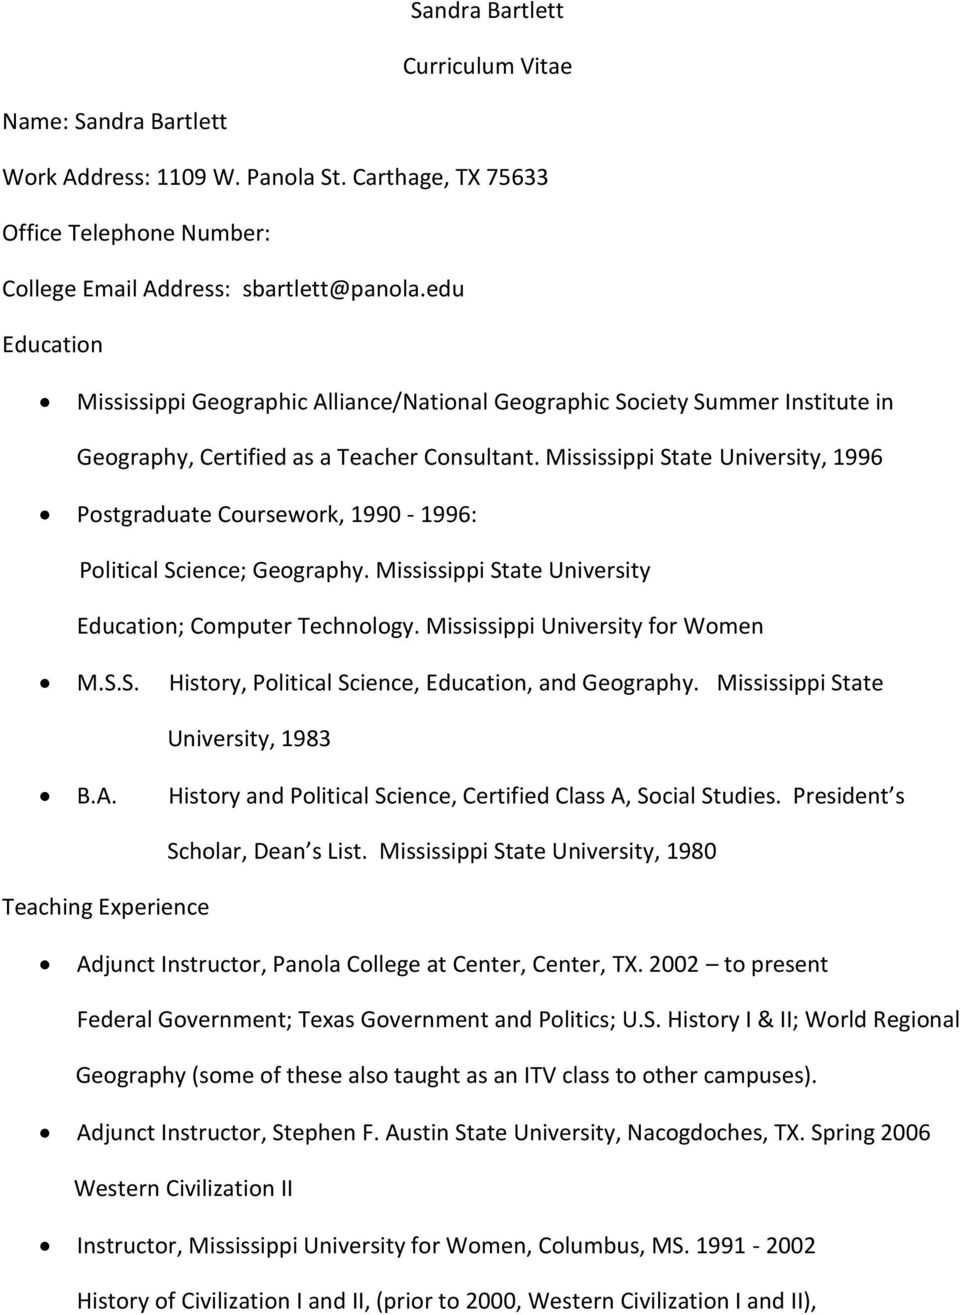 Mississippi State University, 1996 Postgraduate Coursework, 1990-1996: Political Science; Geography. Mississippi State University Education; Computer Technology. Mississippi University for Women M.S.S. History, Political Science, Education, and Geography.